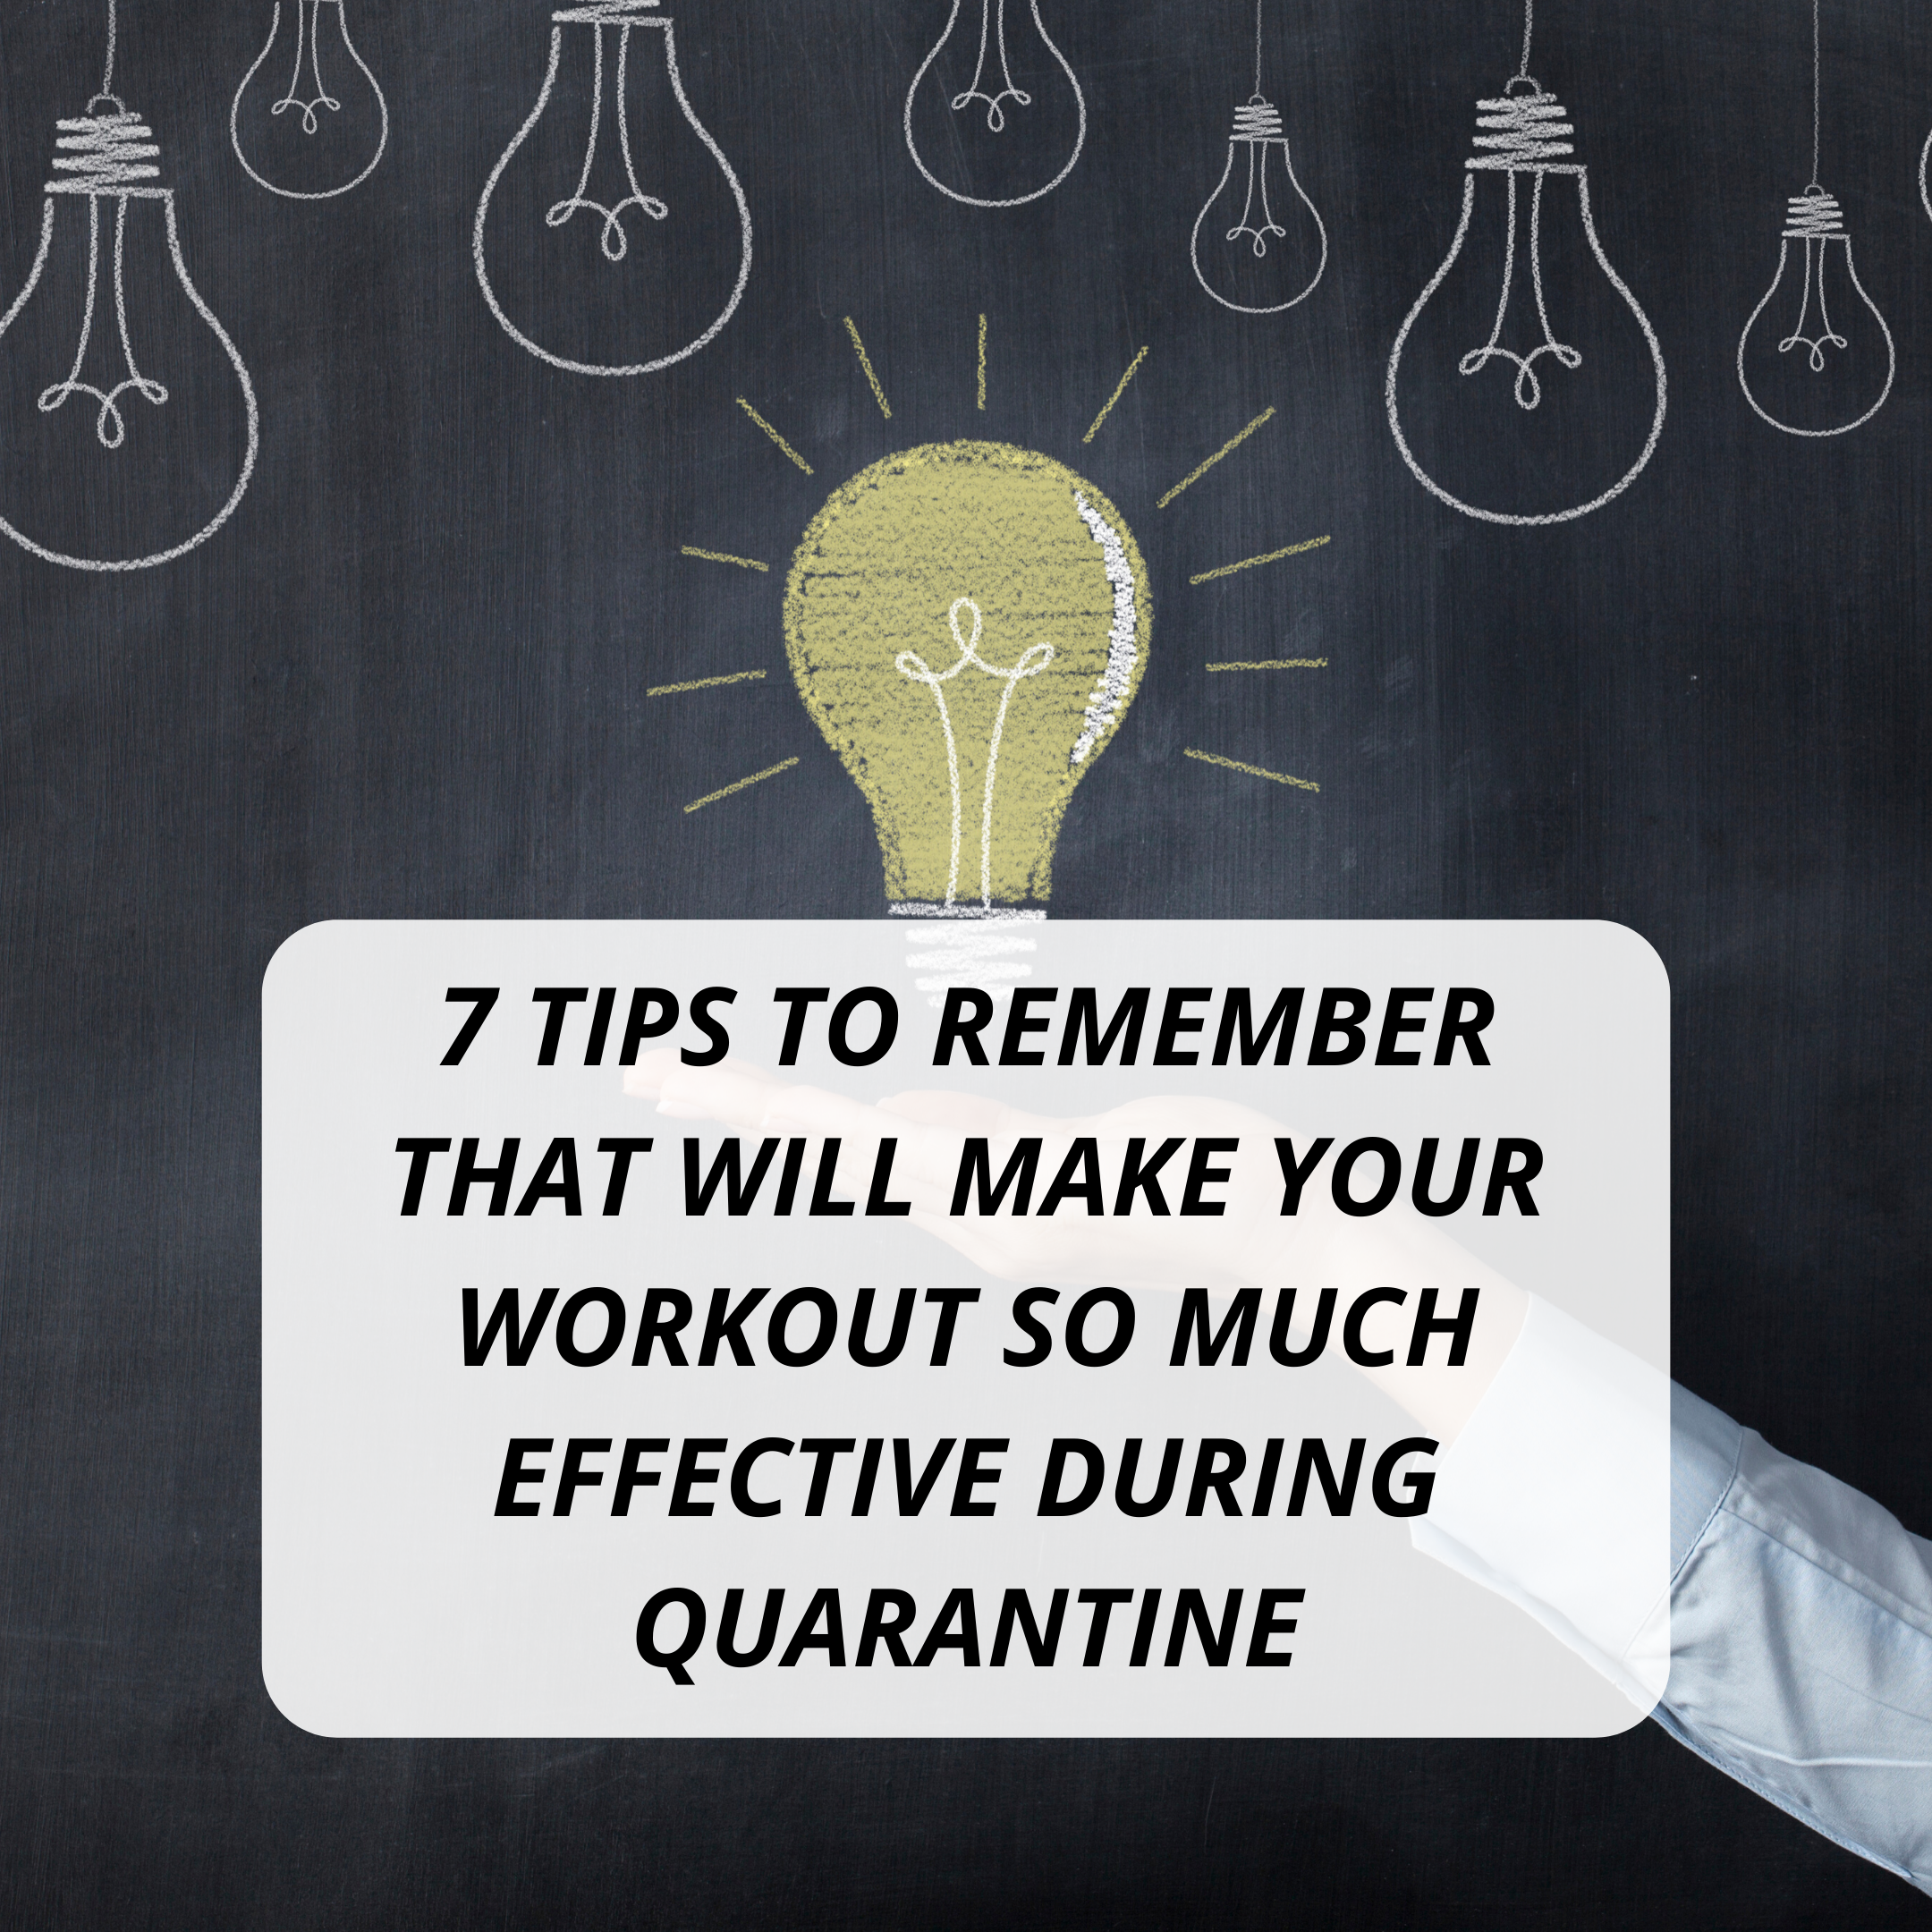 7 Tips To Remember That Will Make Your Workout So Much Effective During Quarantine